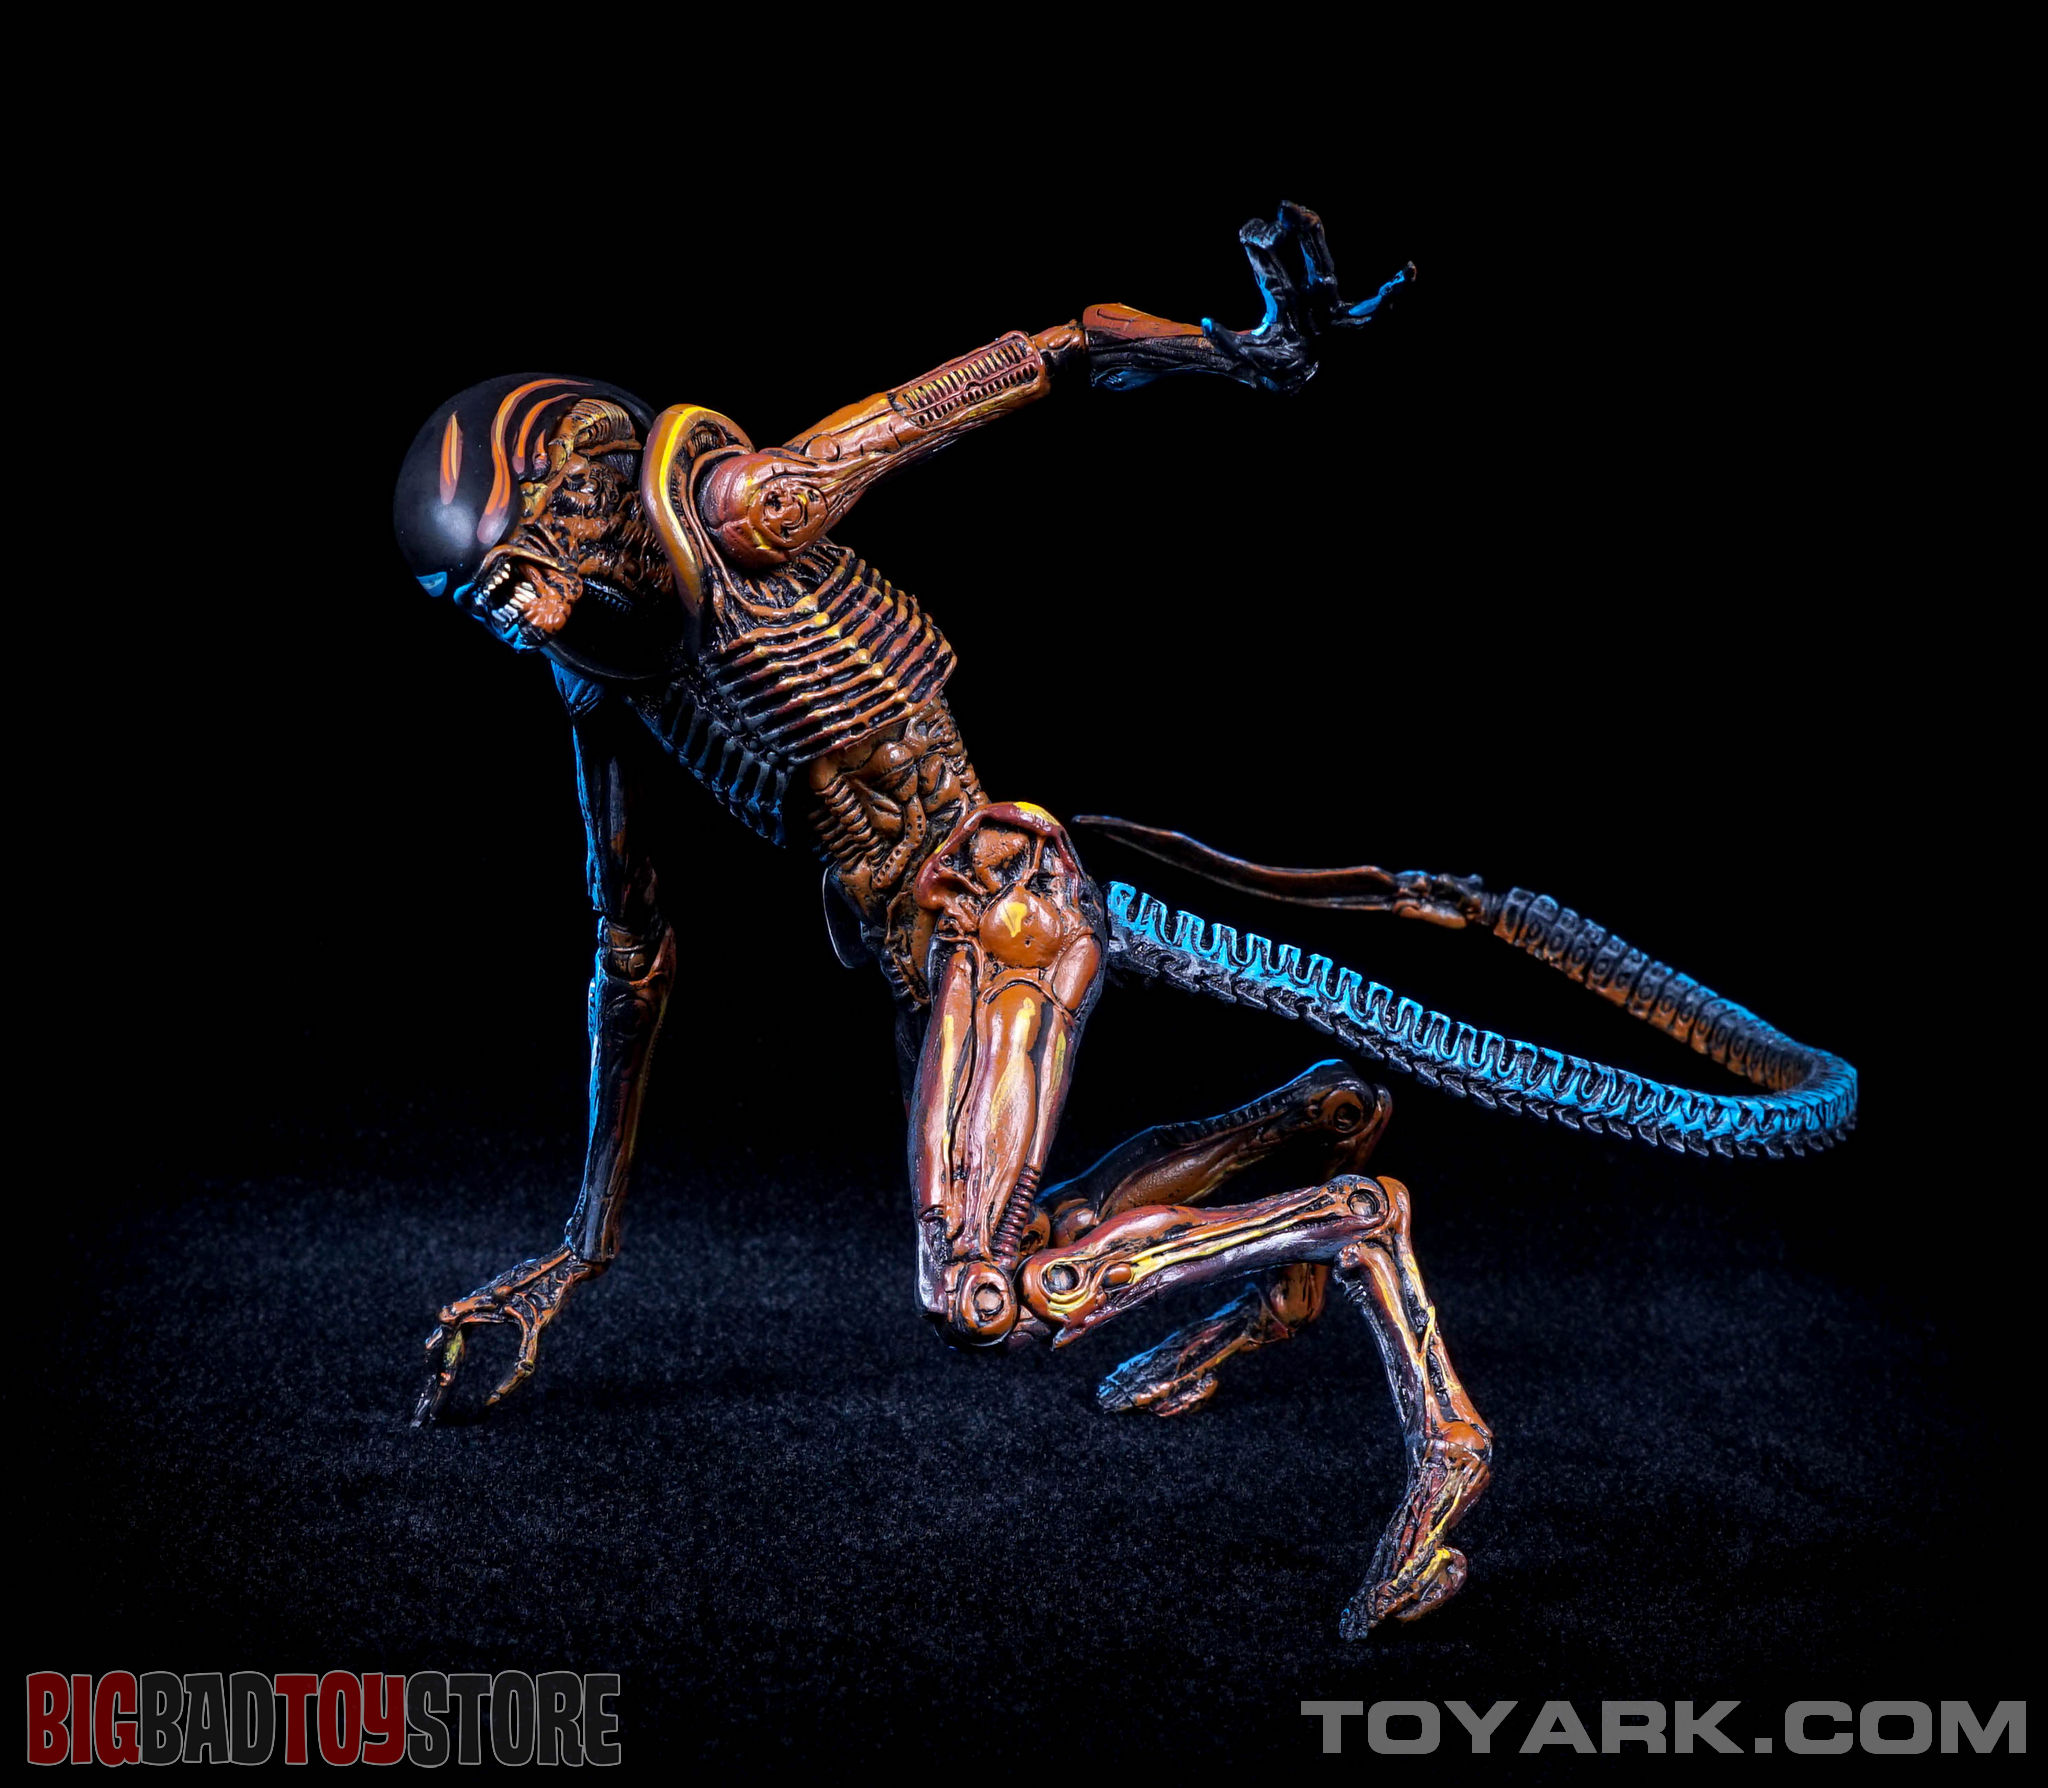 http://news.toyark.com/wp-content/uploads/sites/4/2015/06/NECA-NES-Dog-Alien-039.jpg